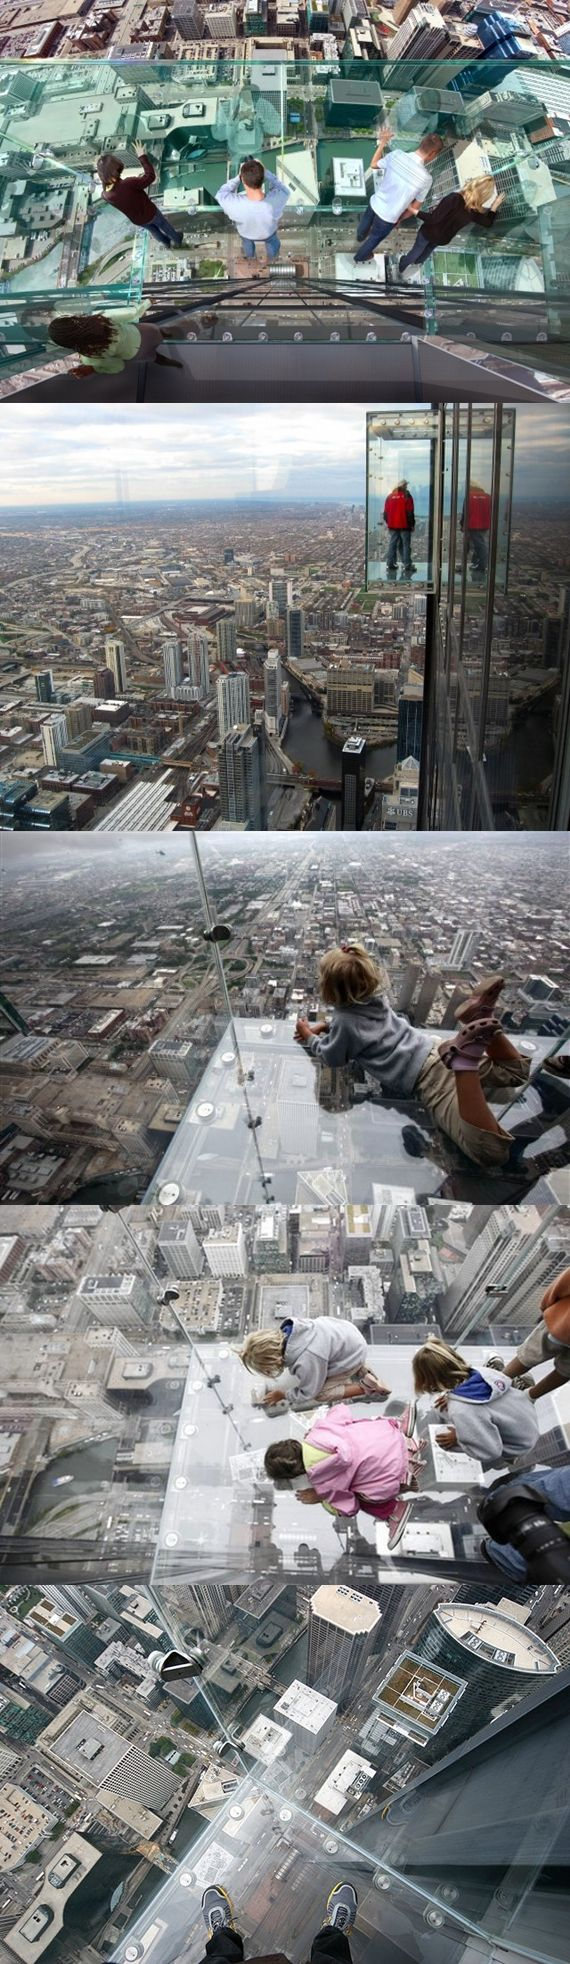 """The Ledge"" at The Willis Tower in Chicago, Illinois"